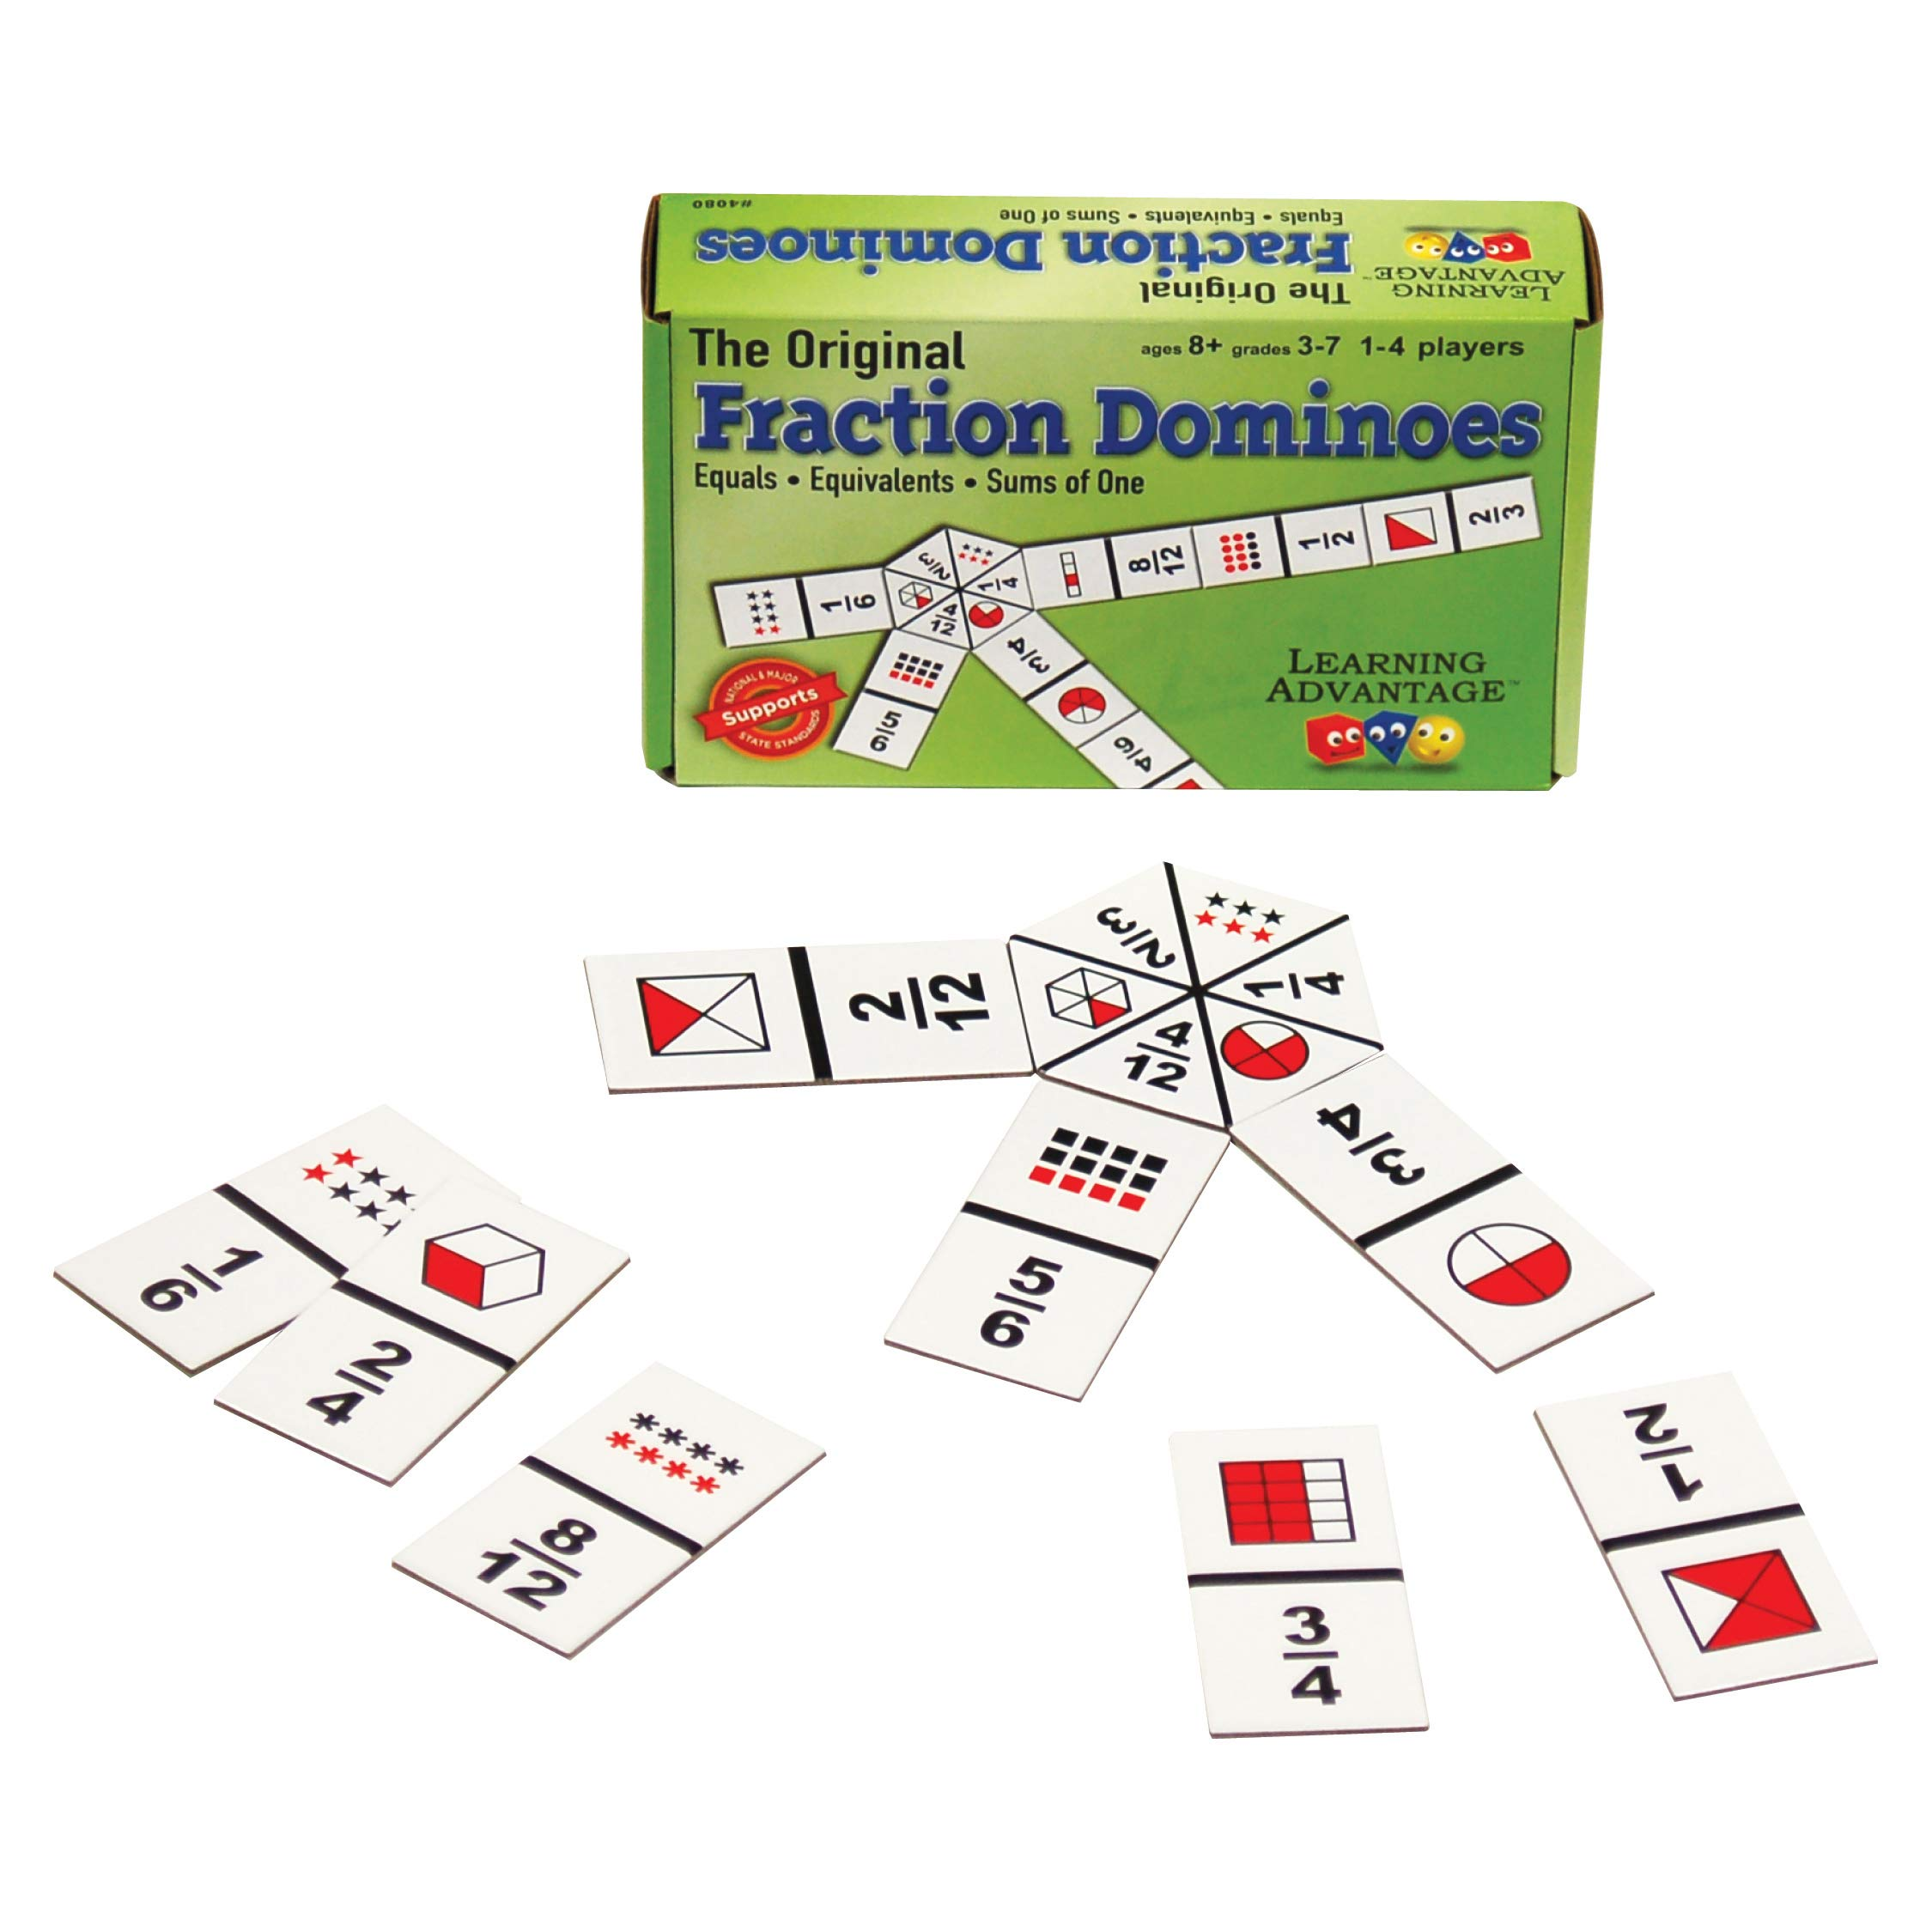 Learning Advantage The Original Fraction Dominoes - 45 Dominoes - Math Manipulative Game for Kids - Teach Equivalent, Adding and Subtracting Fractions by Learning Advantage